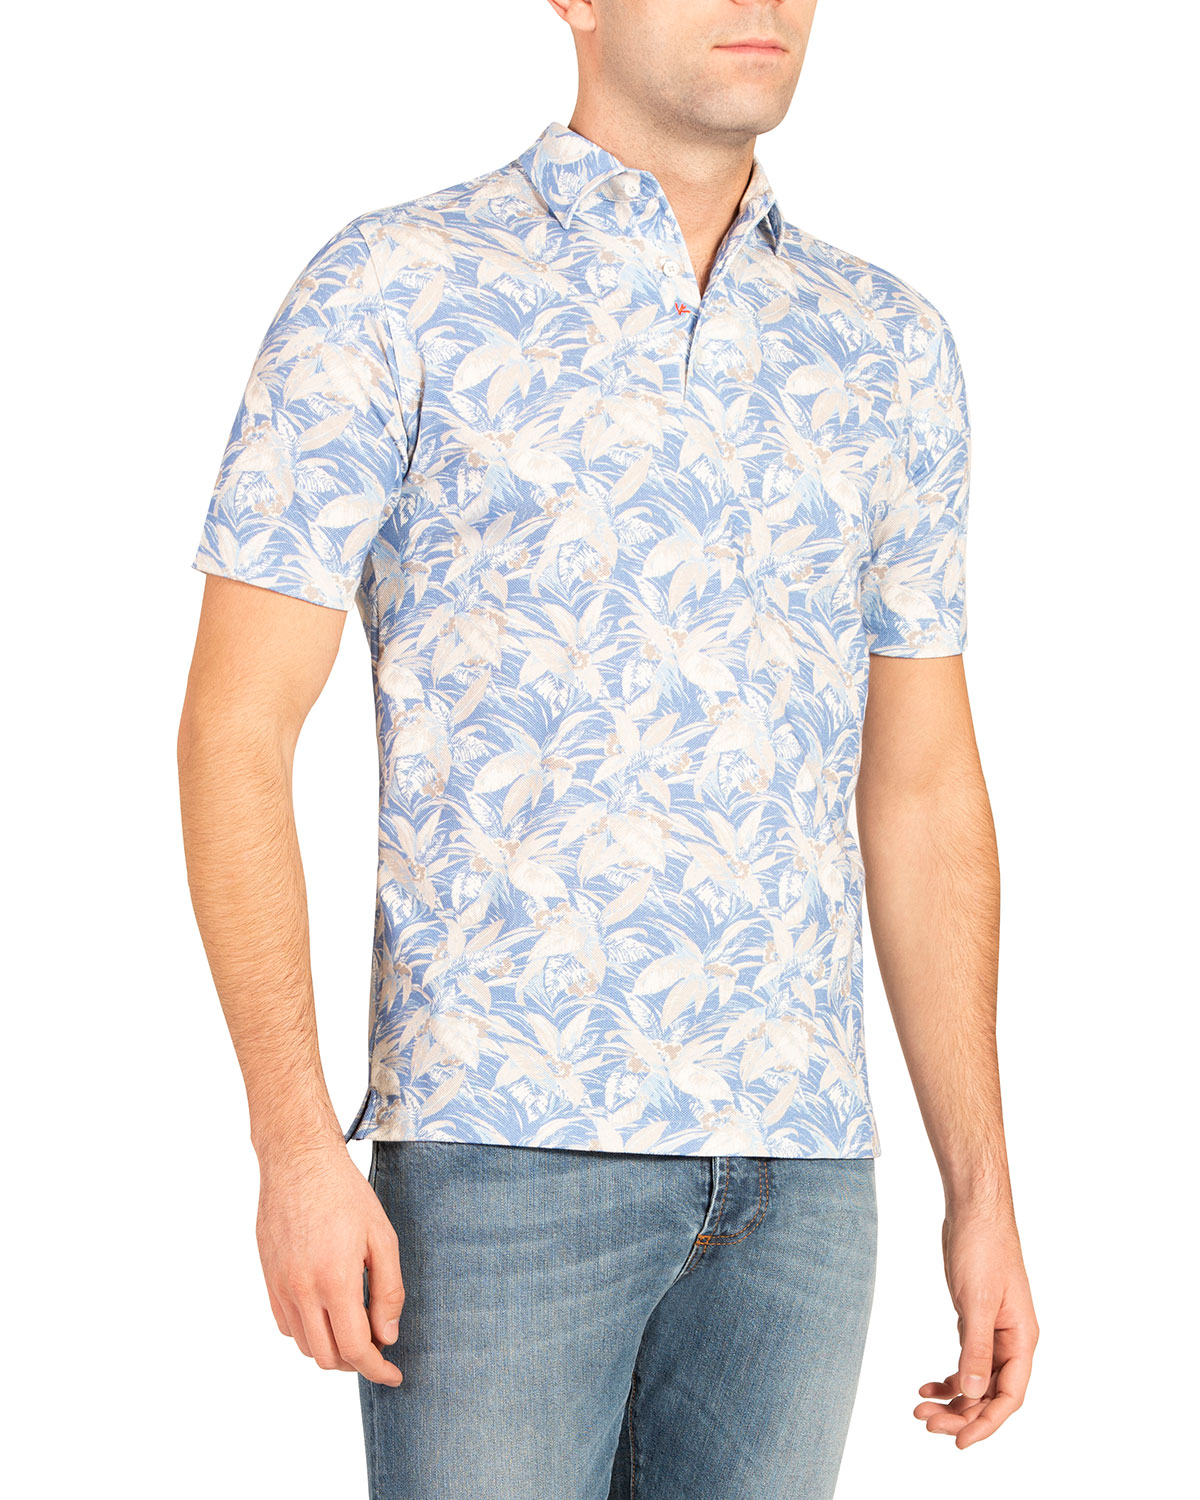 Men's Floral Polo Shirt